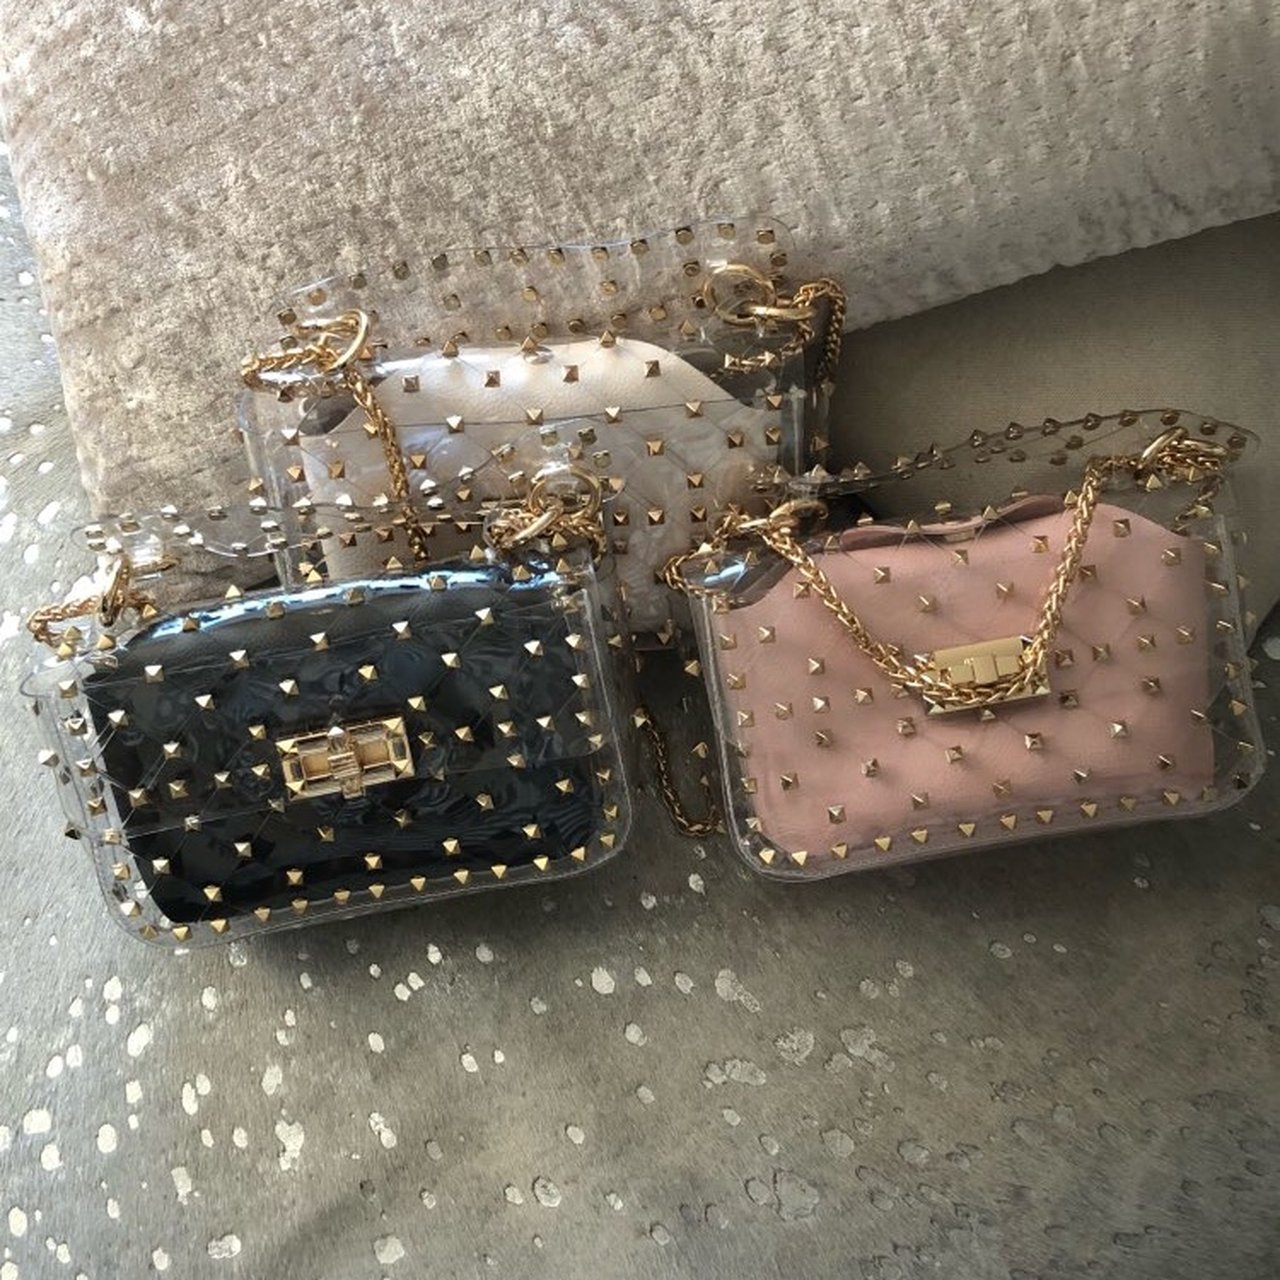 Mini rock stud bags I have 3 available in colours black nude - Depop 5f887bd66913e